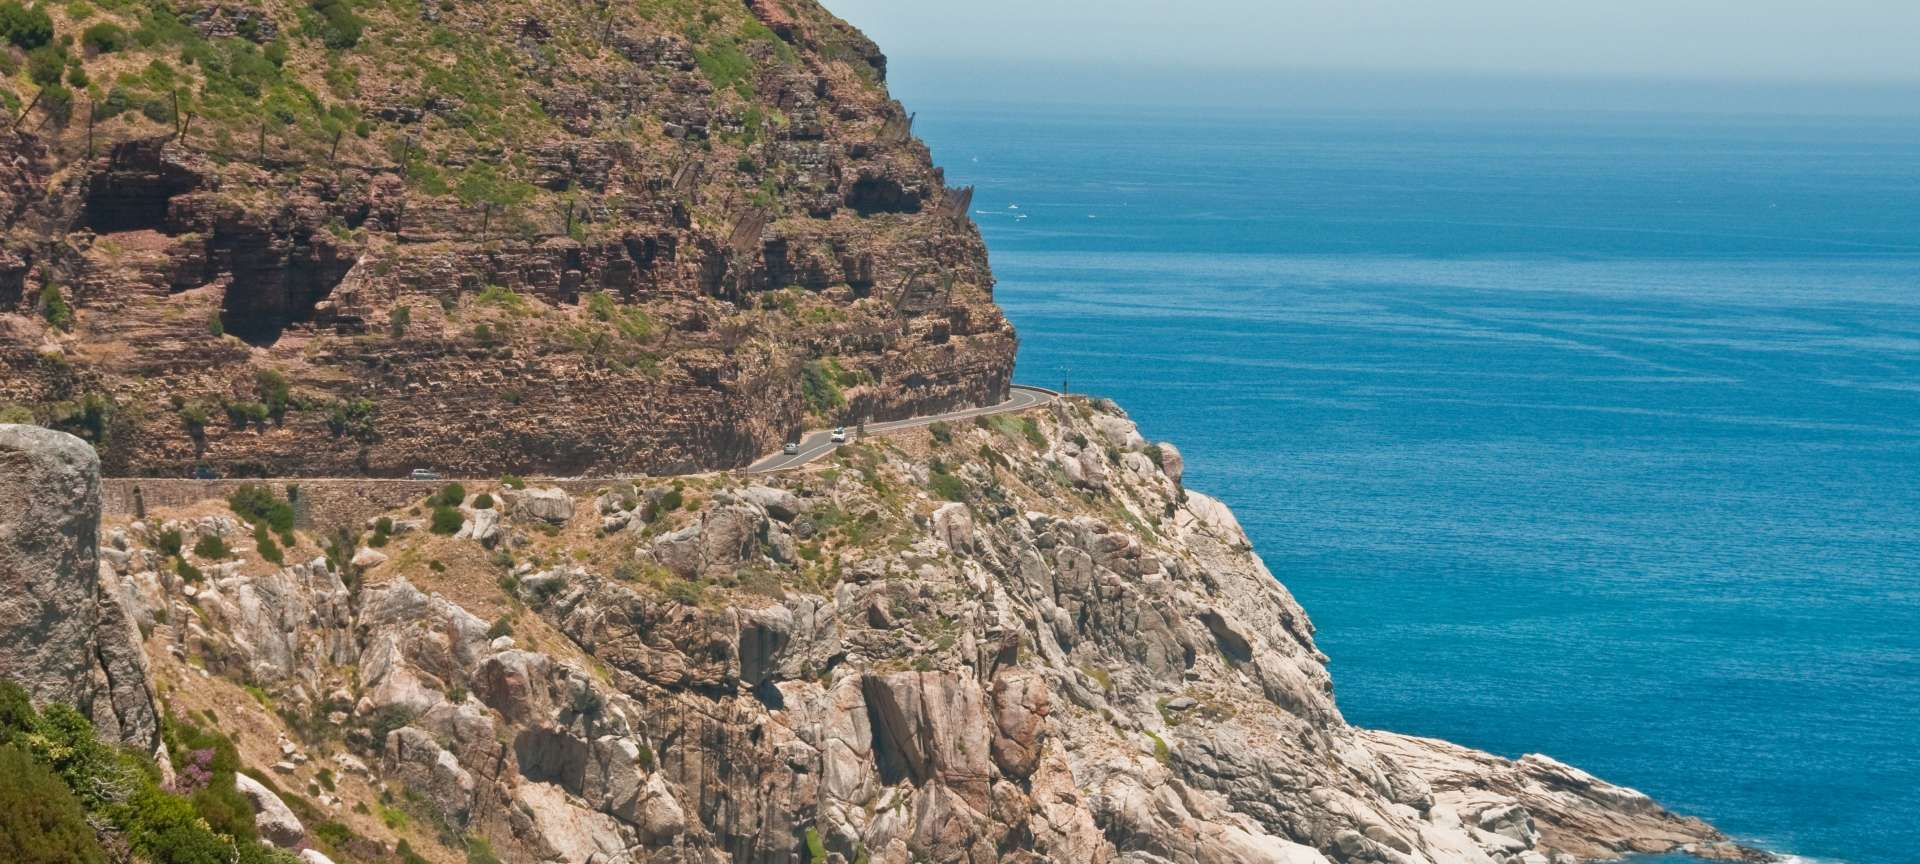 One of the breathtaking vistas from a stopover on Chapmans Peak Drive.